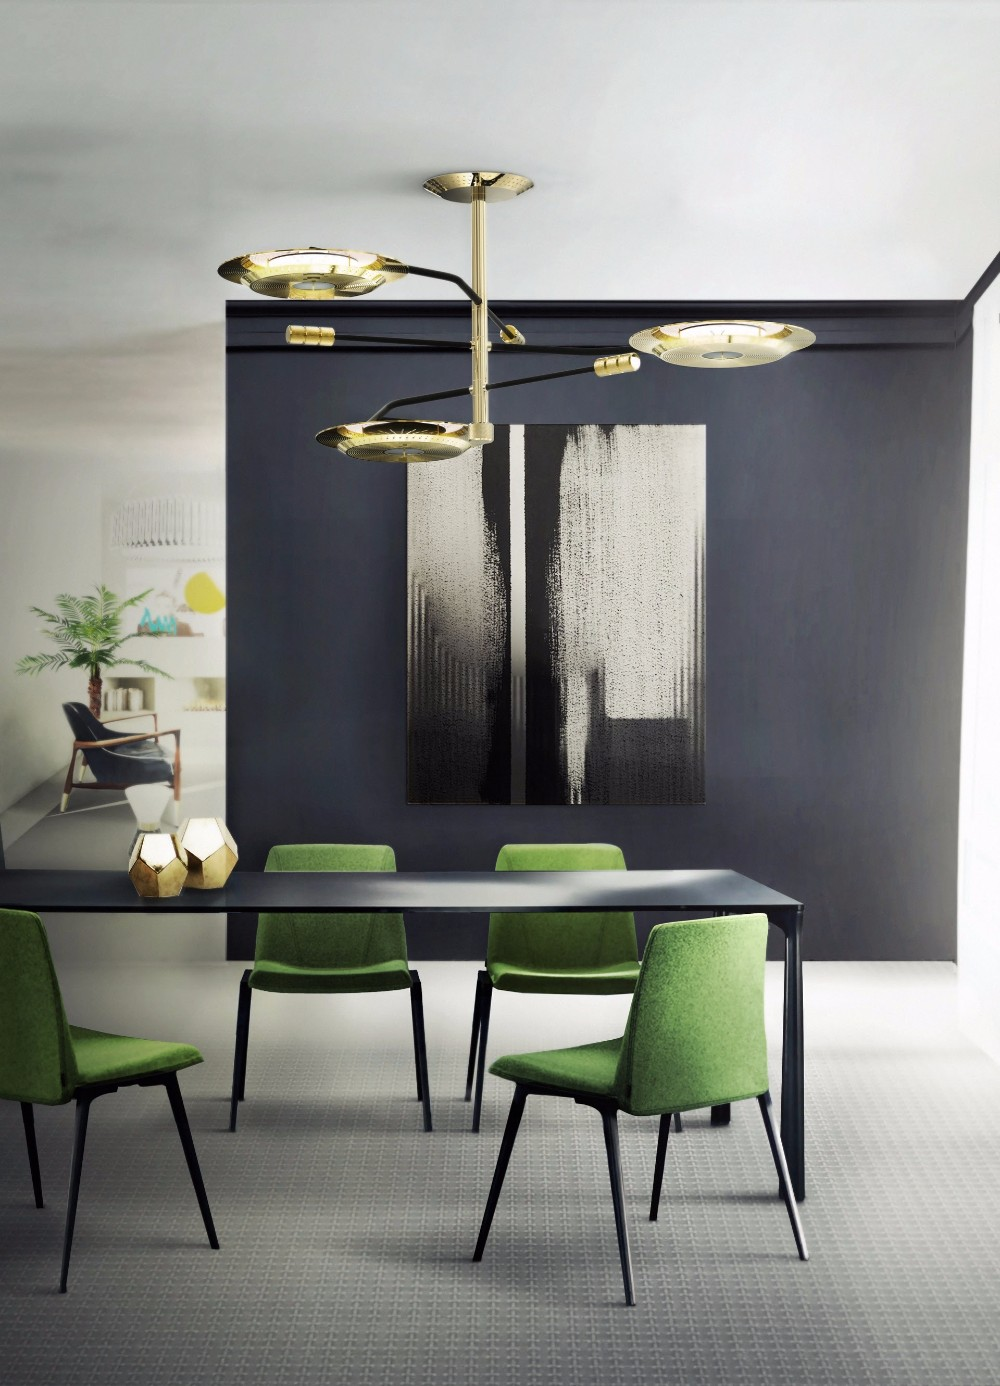 15 Ideas on How to Use Golden Contemporary Lamps in Your Home